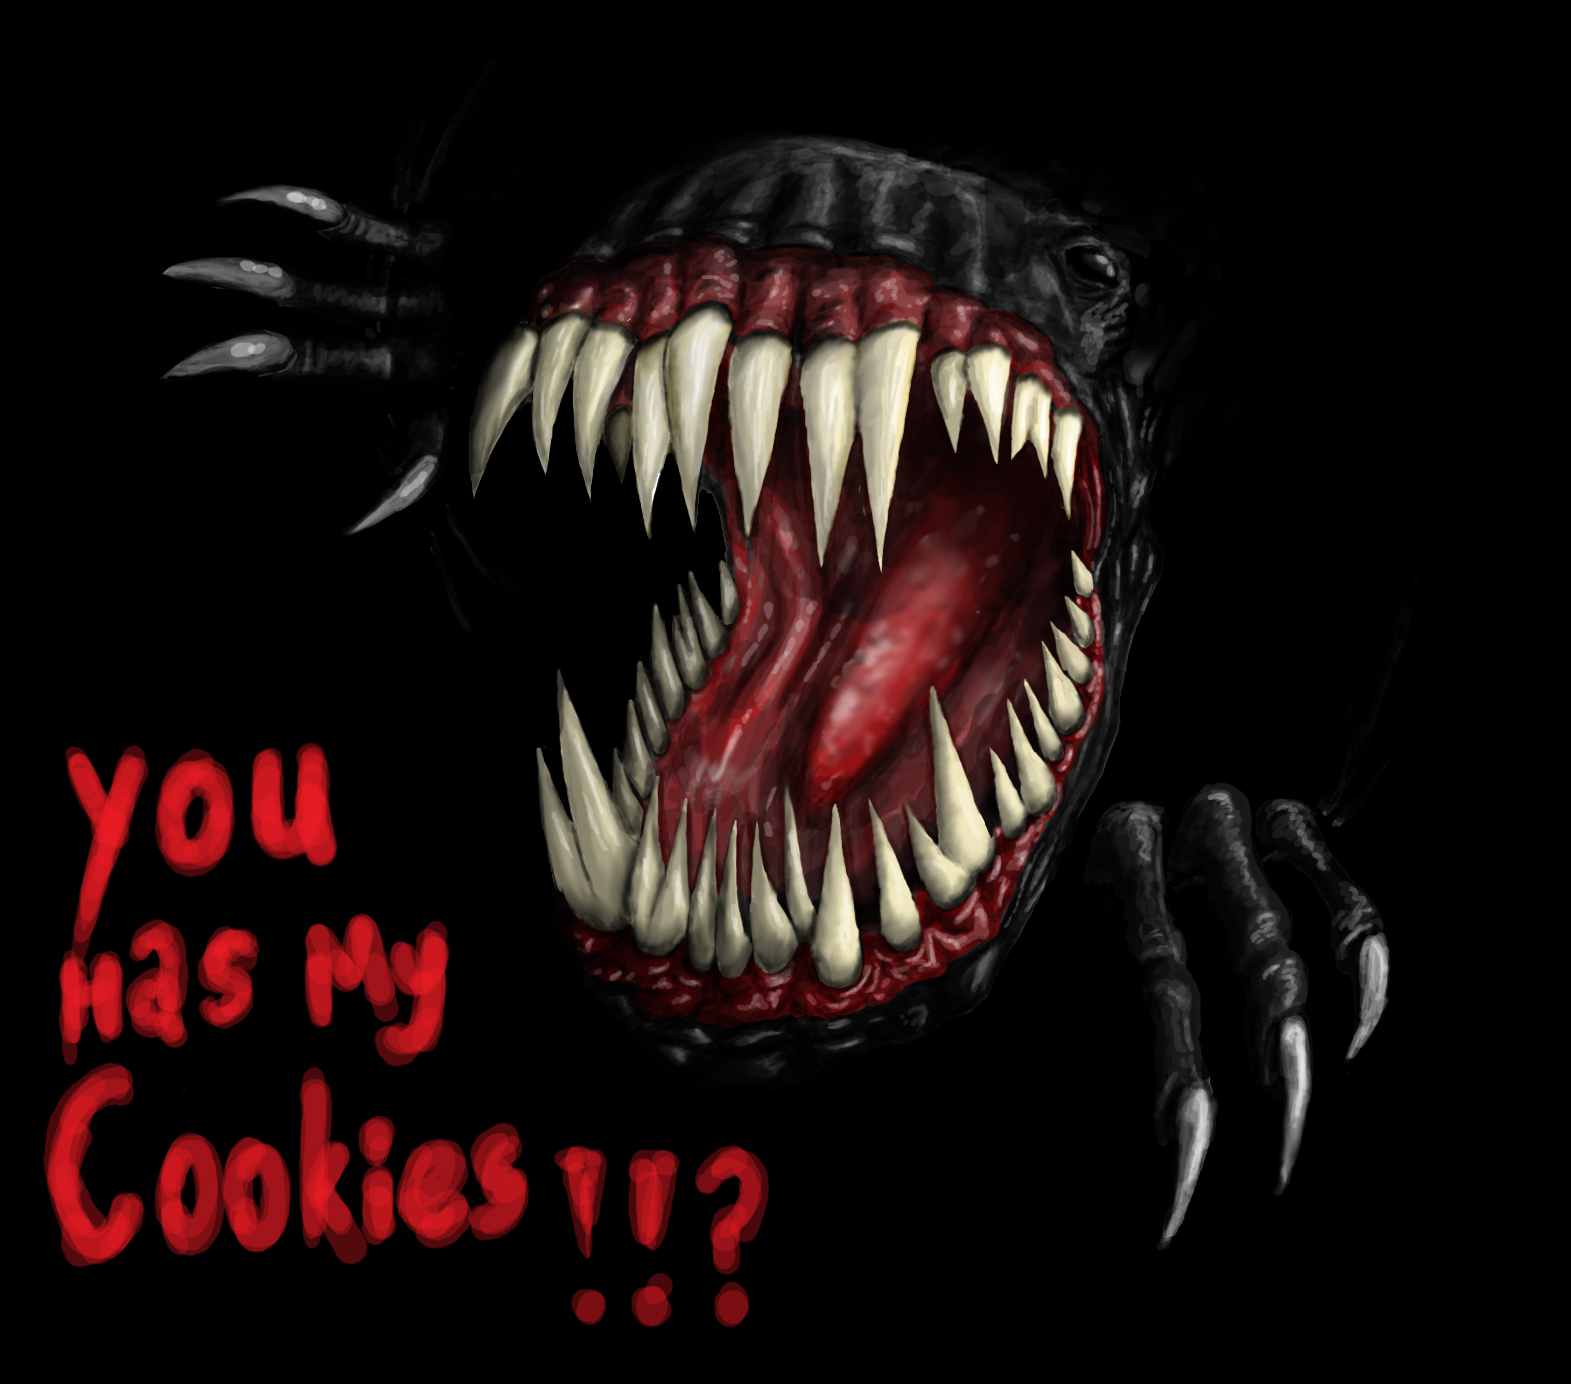 You has my cookies!!?!